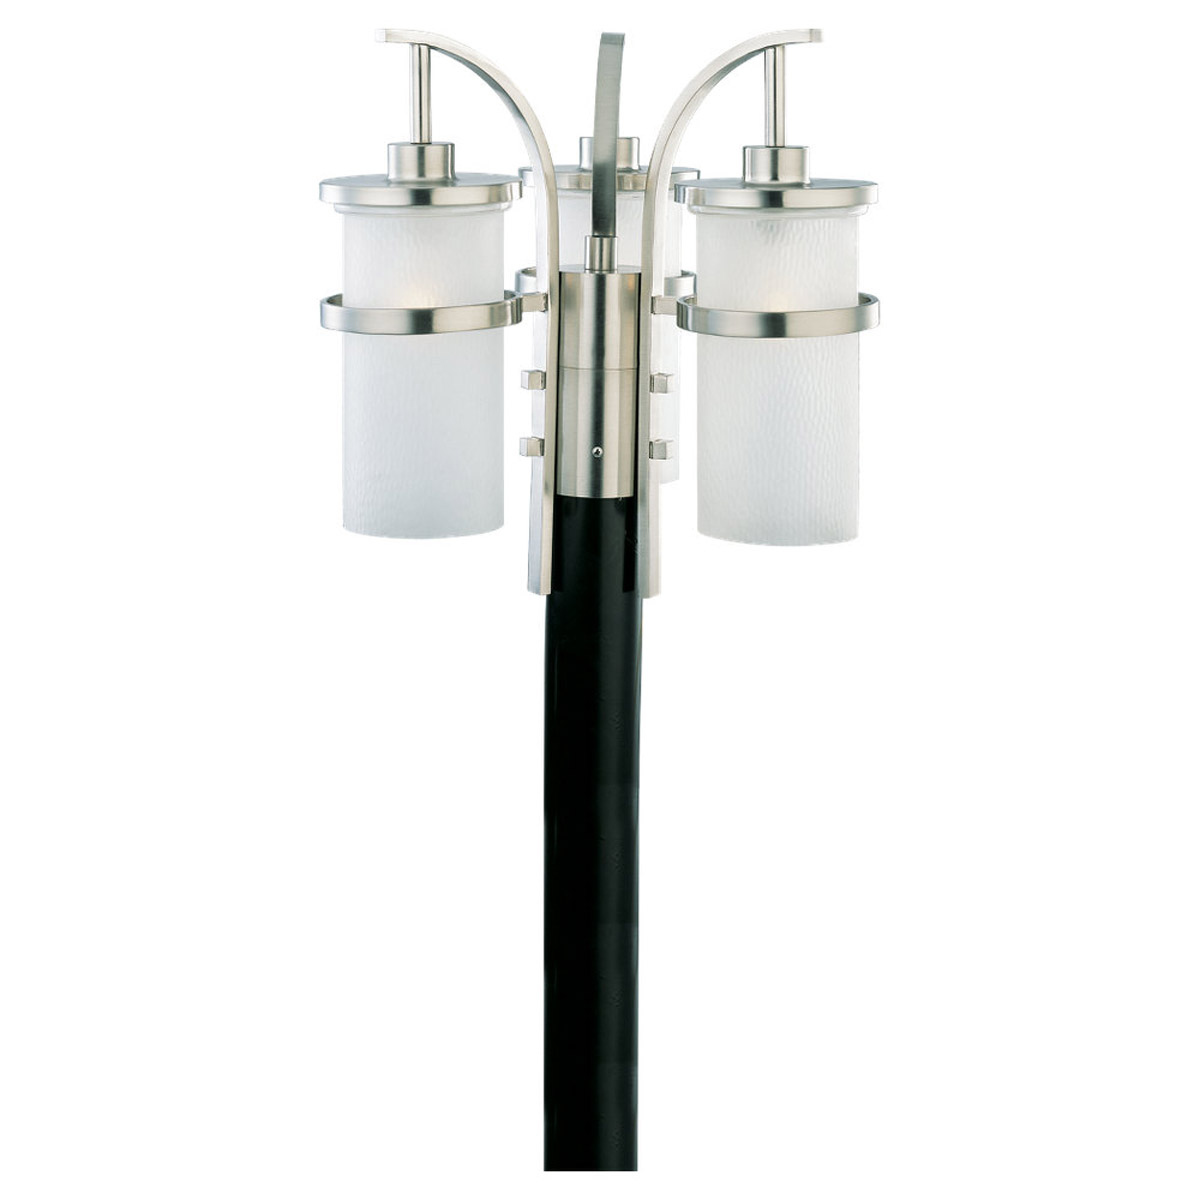 Sea Gull Lighting Eternity 3 Light Outdoor Post Lantern in Brushed Nickel 82115-962